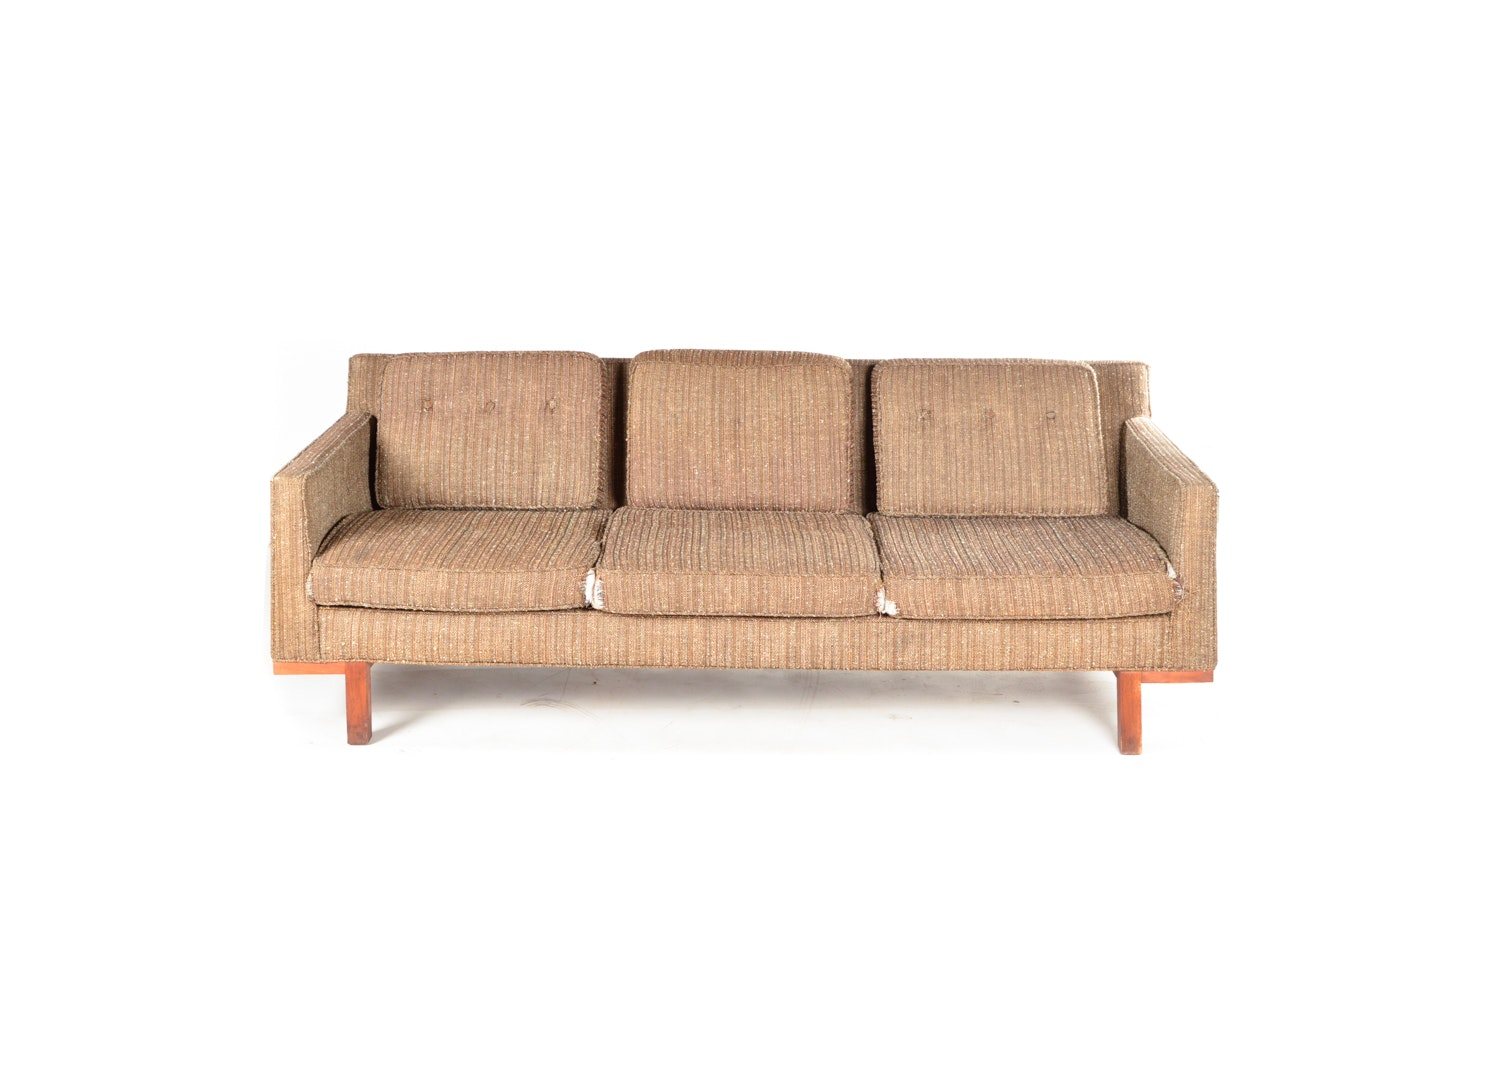 Vintage Mid Century Modern Upholstered Sofa by Marshall Field & Company